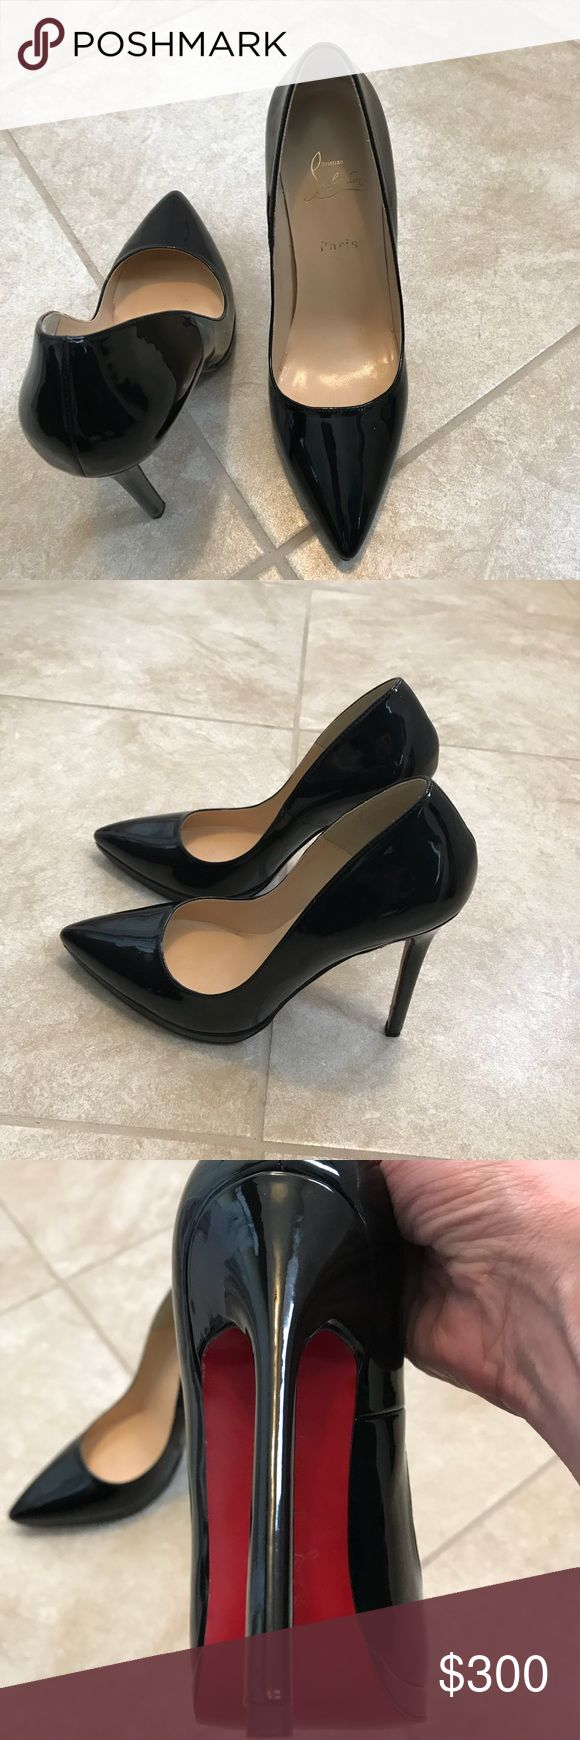 Christian Louboutin black patent So Kate pump